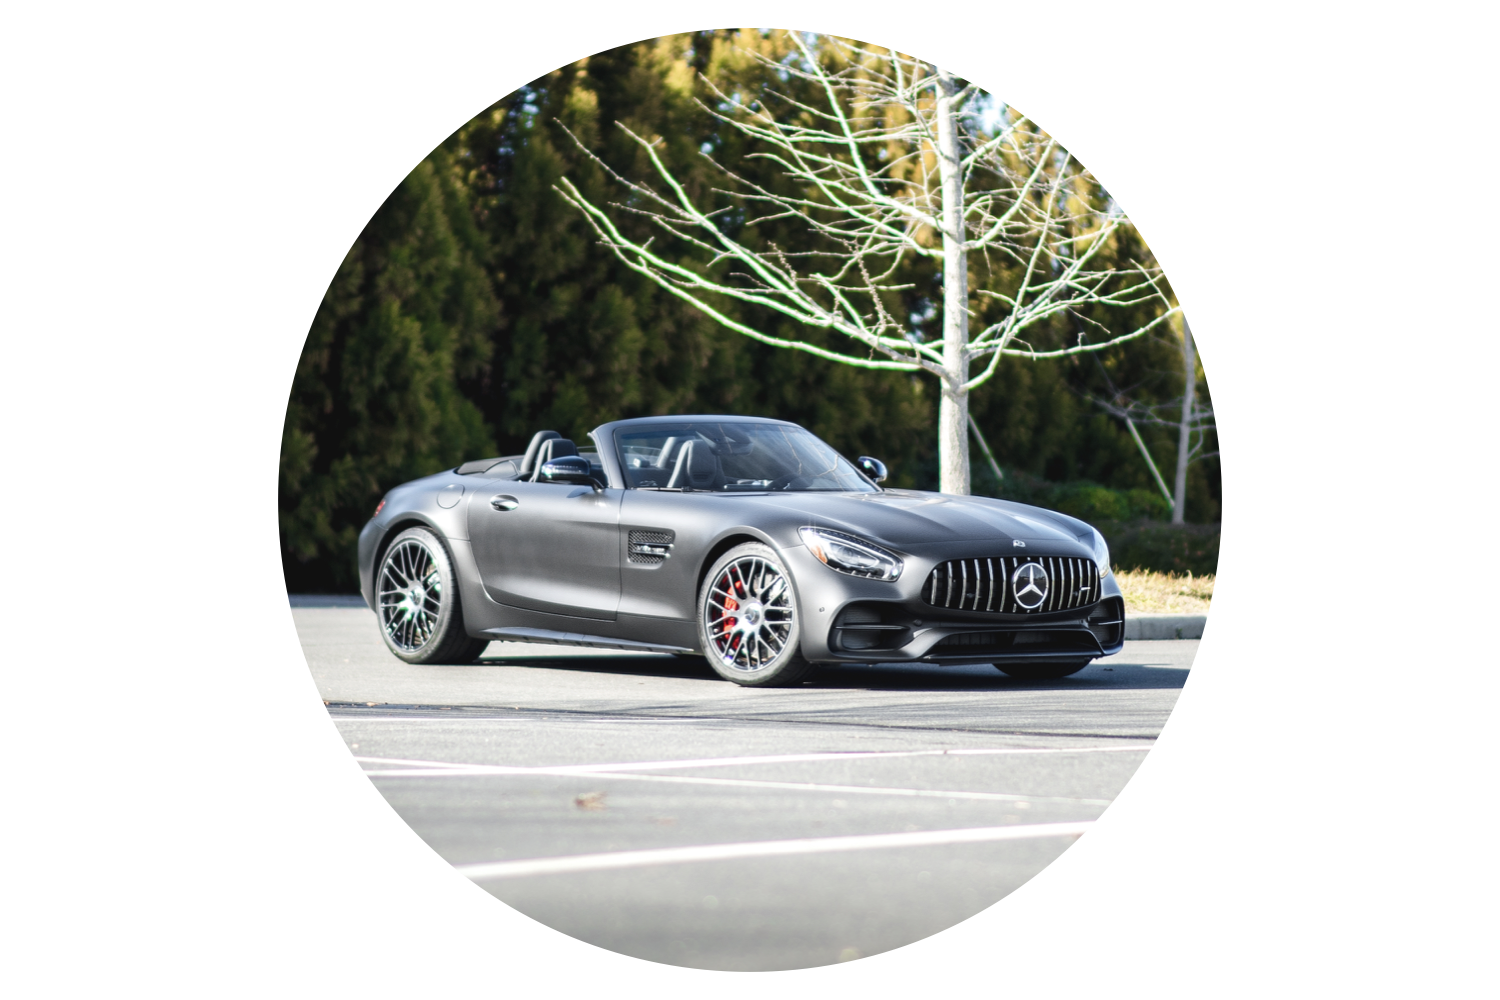 mercedes-benz-amg-gtc-edition-50.png